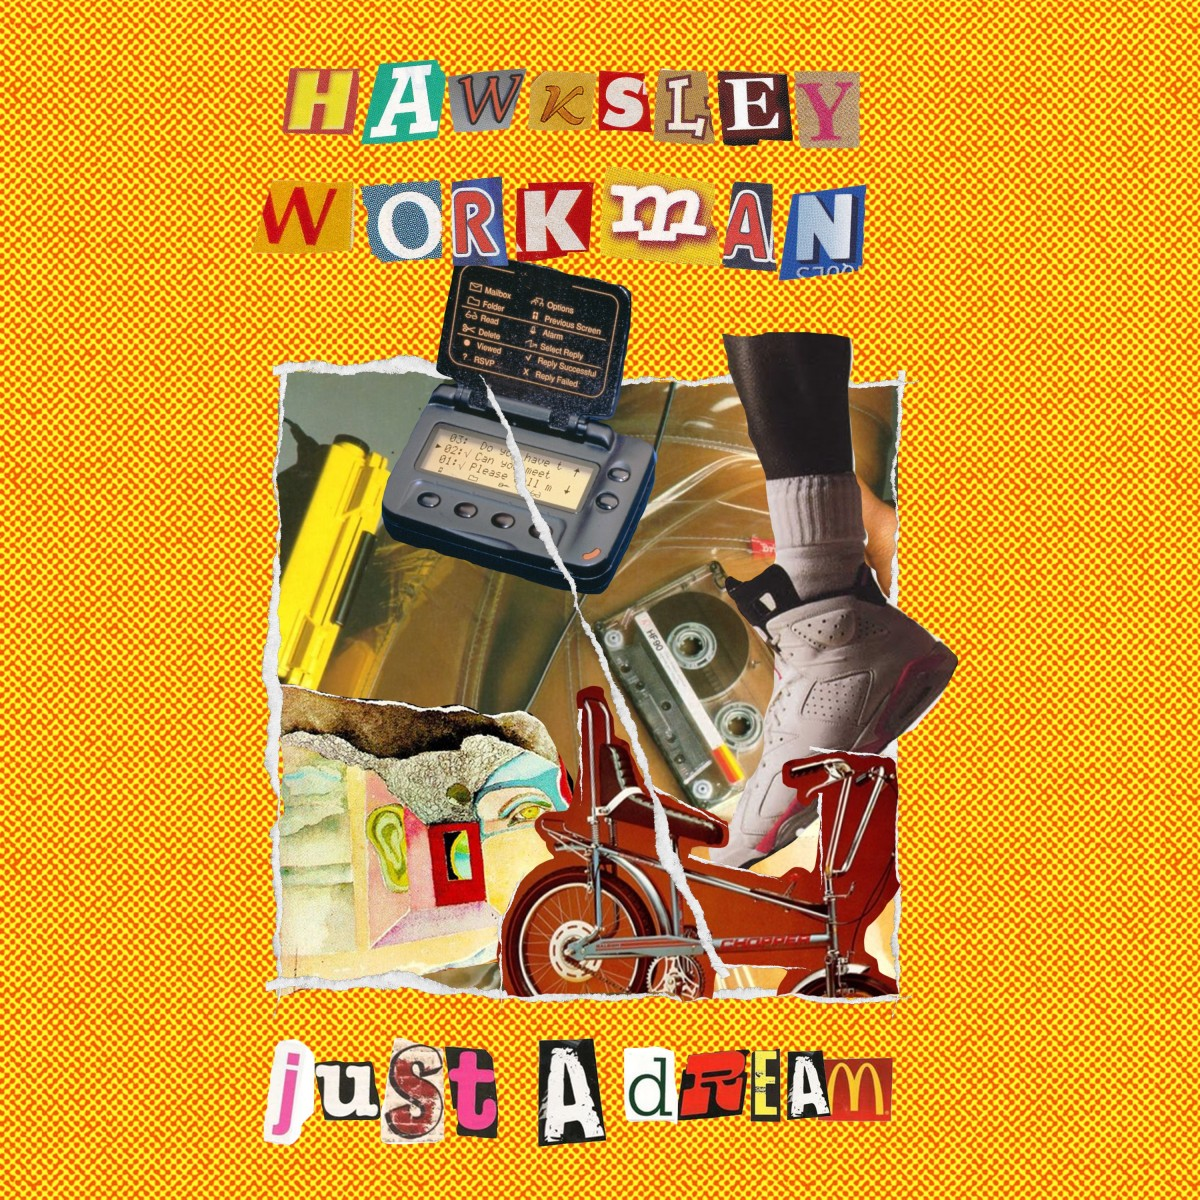 """Hawksley Workman Debuts New Single + Video """"JUST A DREAM"""" From Upcoming LP"""